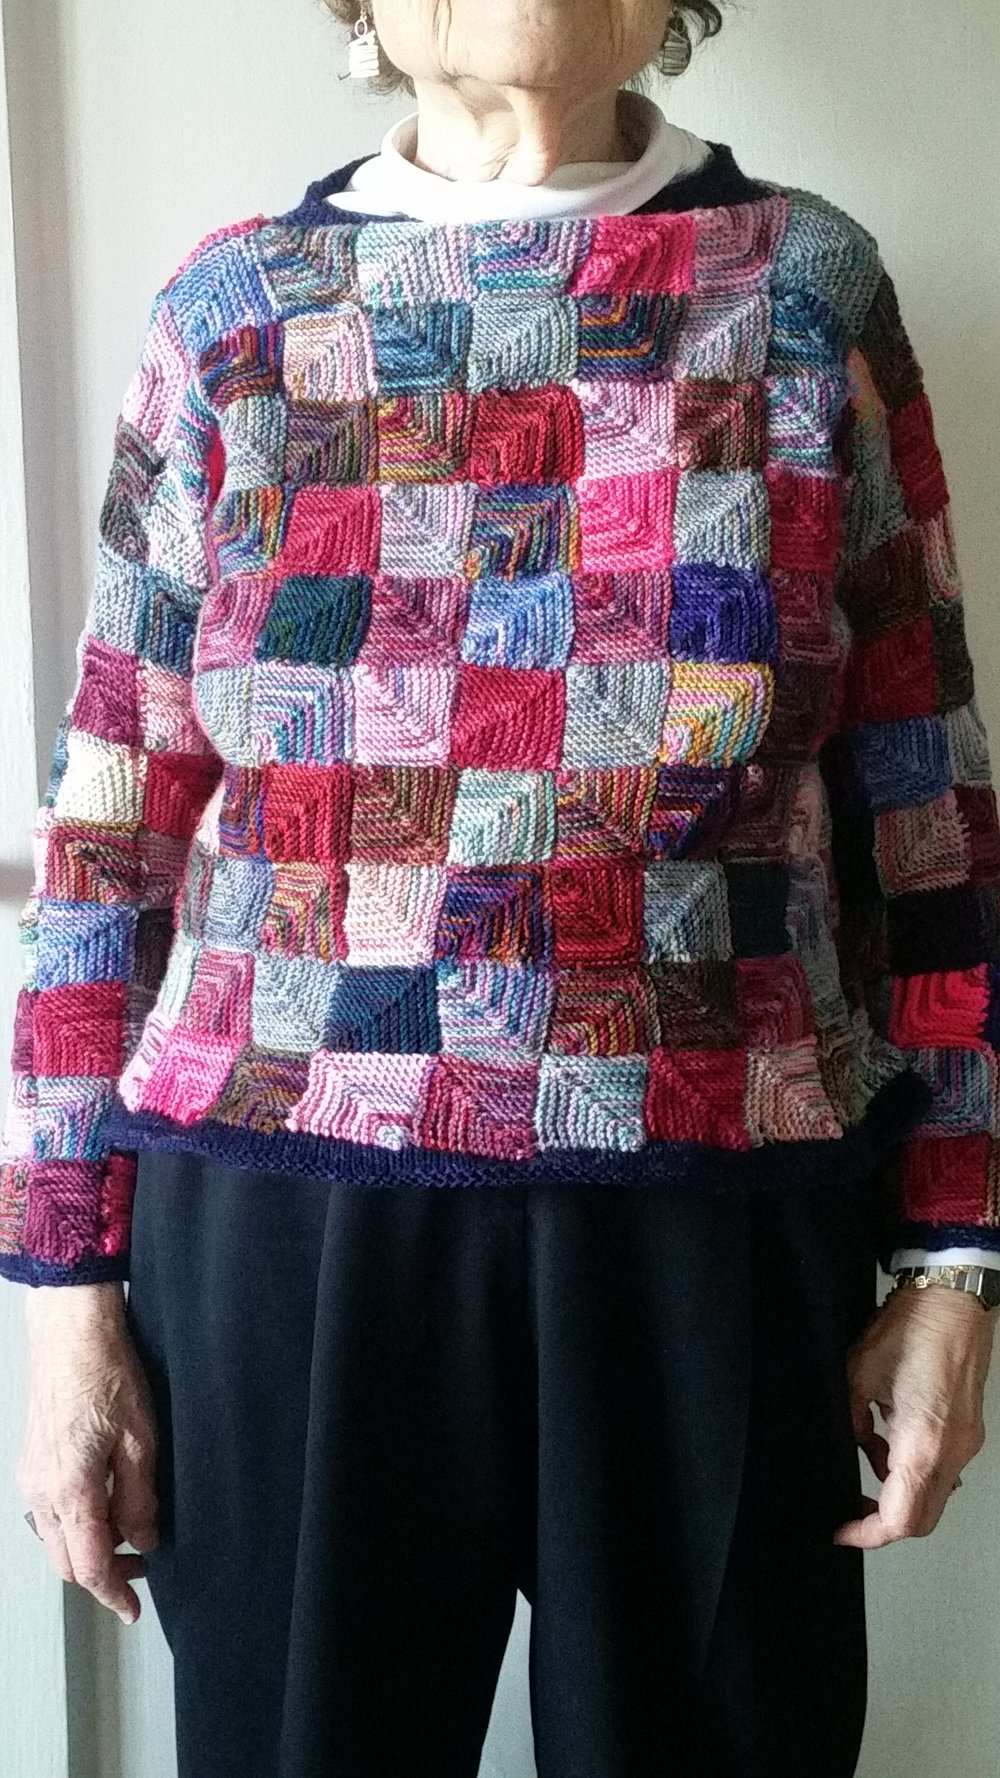 Lynn - This is a modular sweater I put together, just adding on till it was the right size.